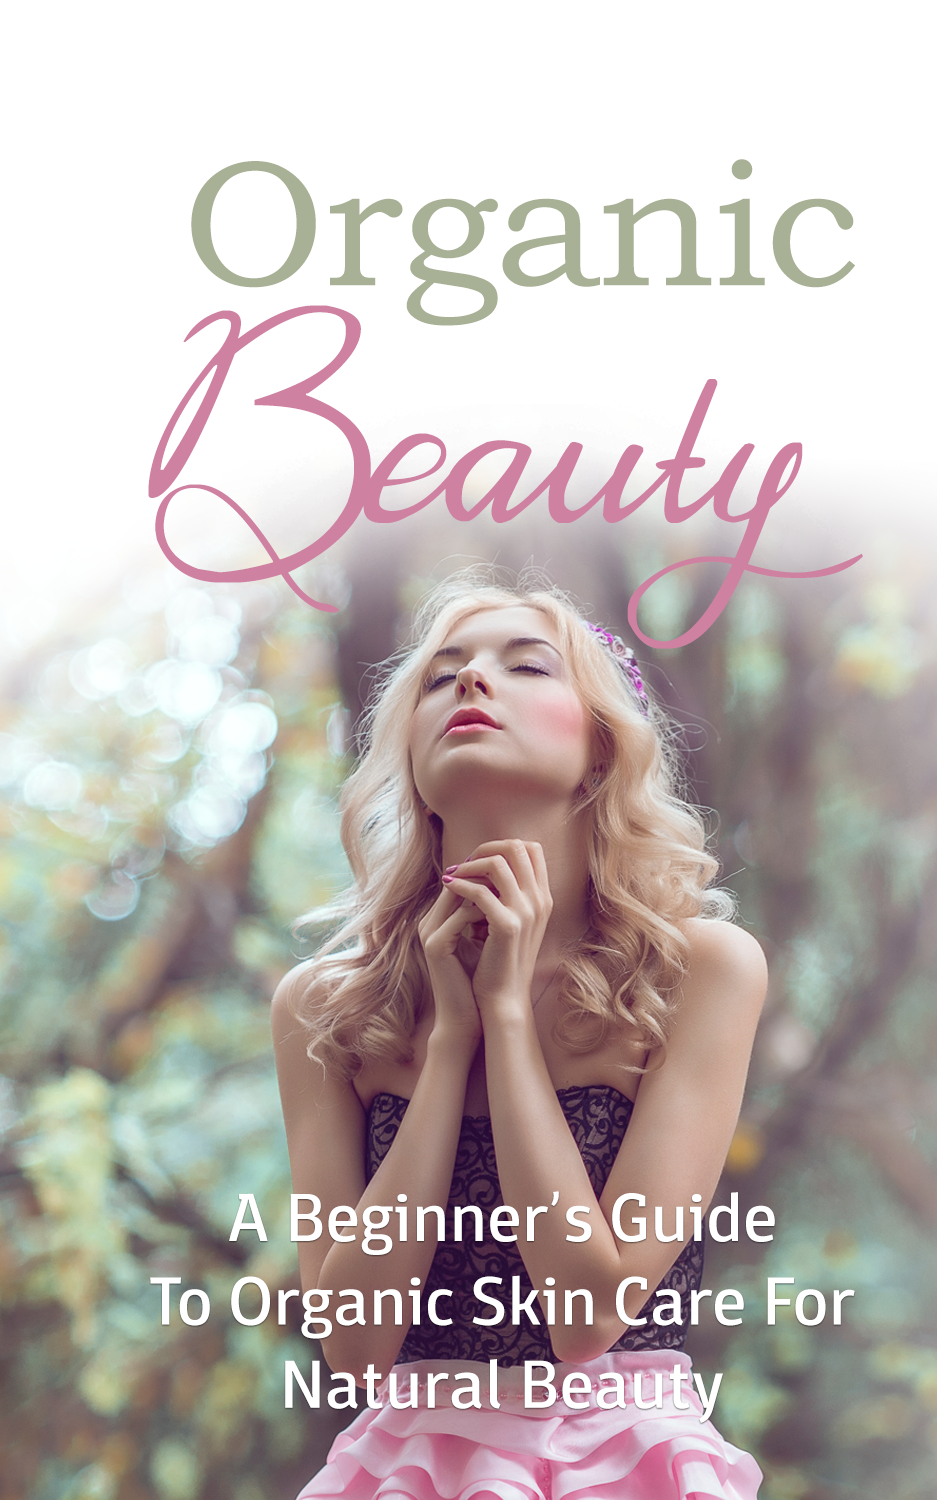 Organic Beauty (A Beginner's Guide To Organic Skin Care For Natural Beauty) Ebook's Ebook Image